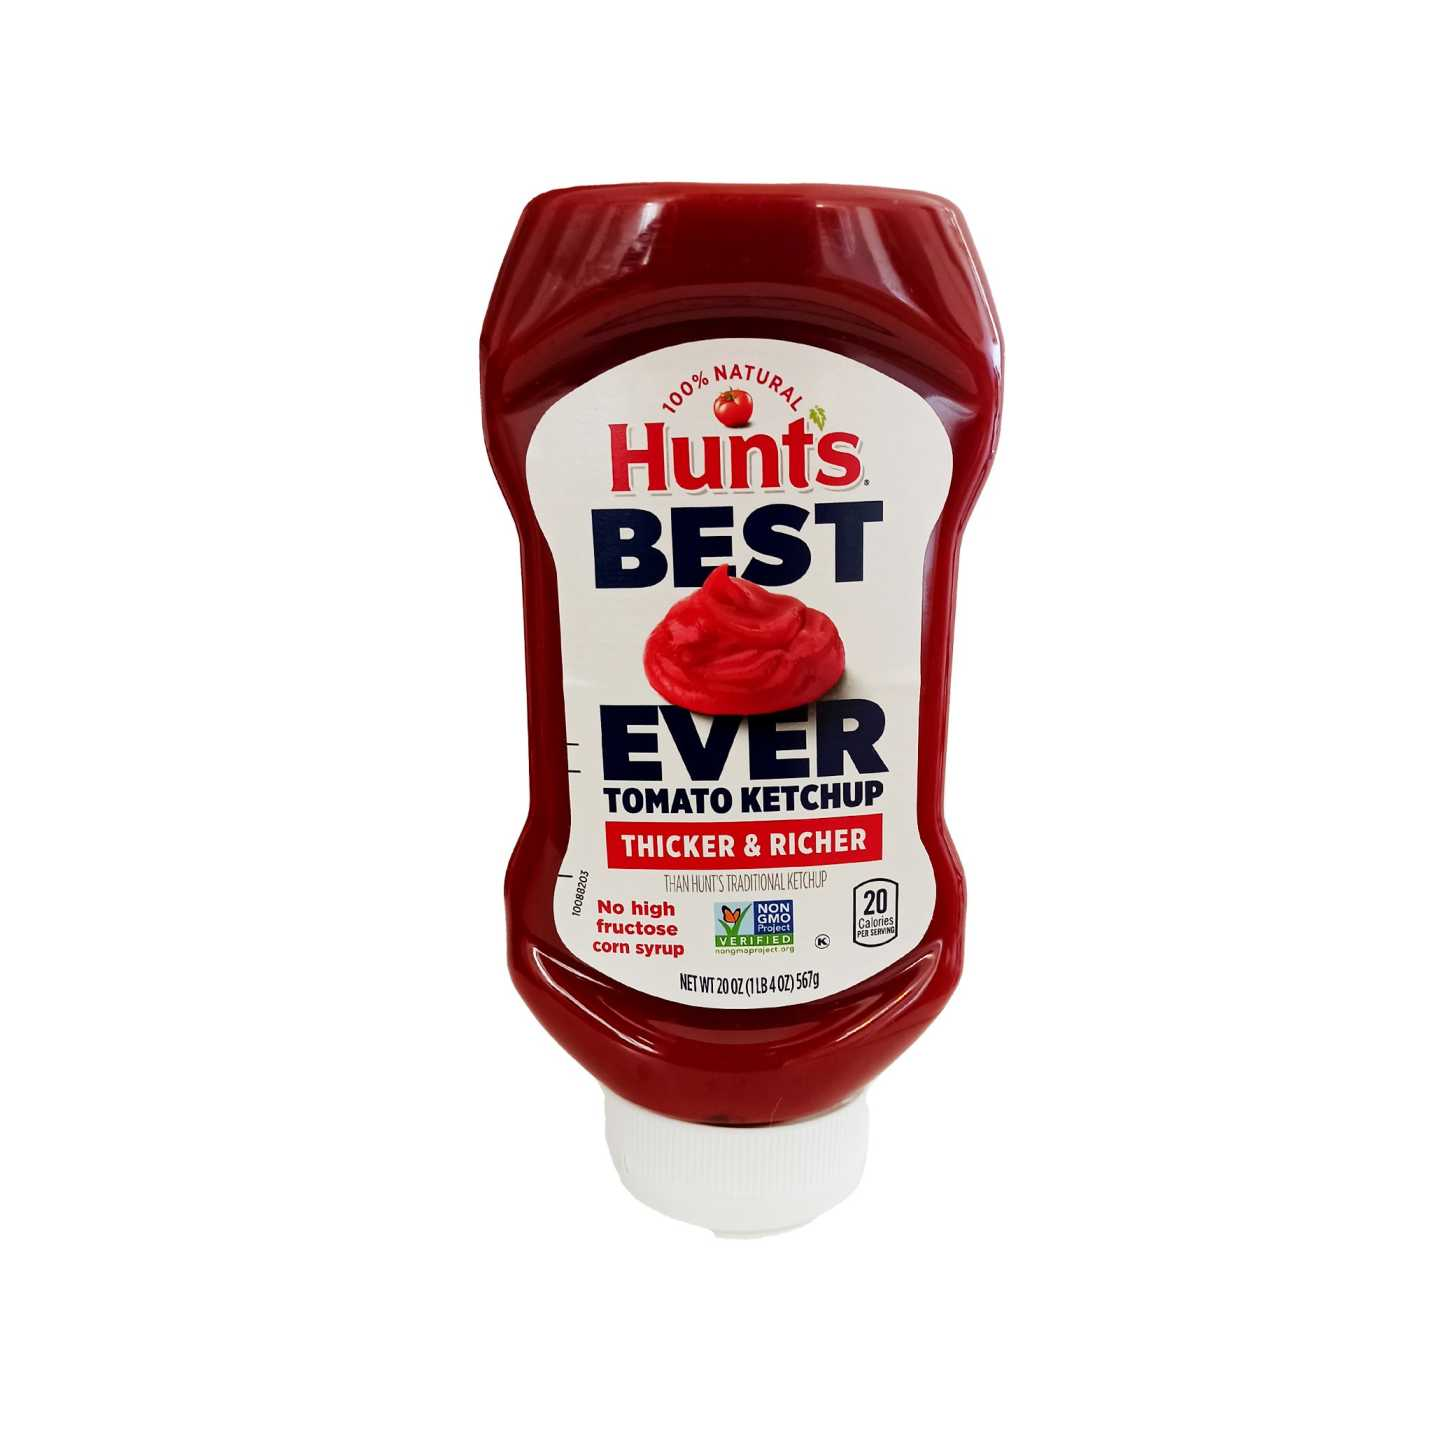 Hunts Best Ketchup - קטשופ האנטס